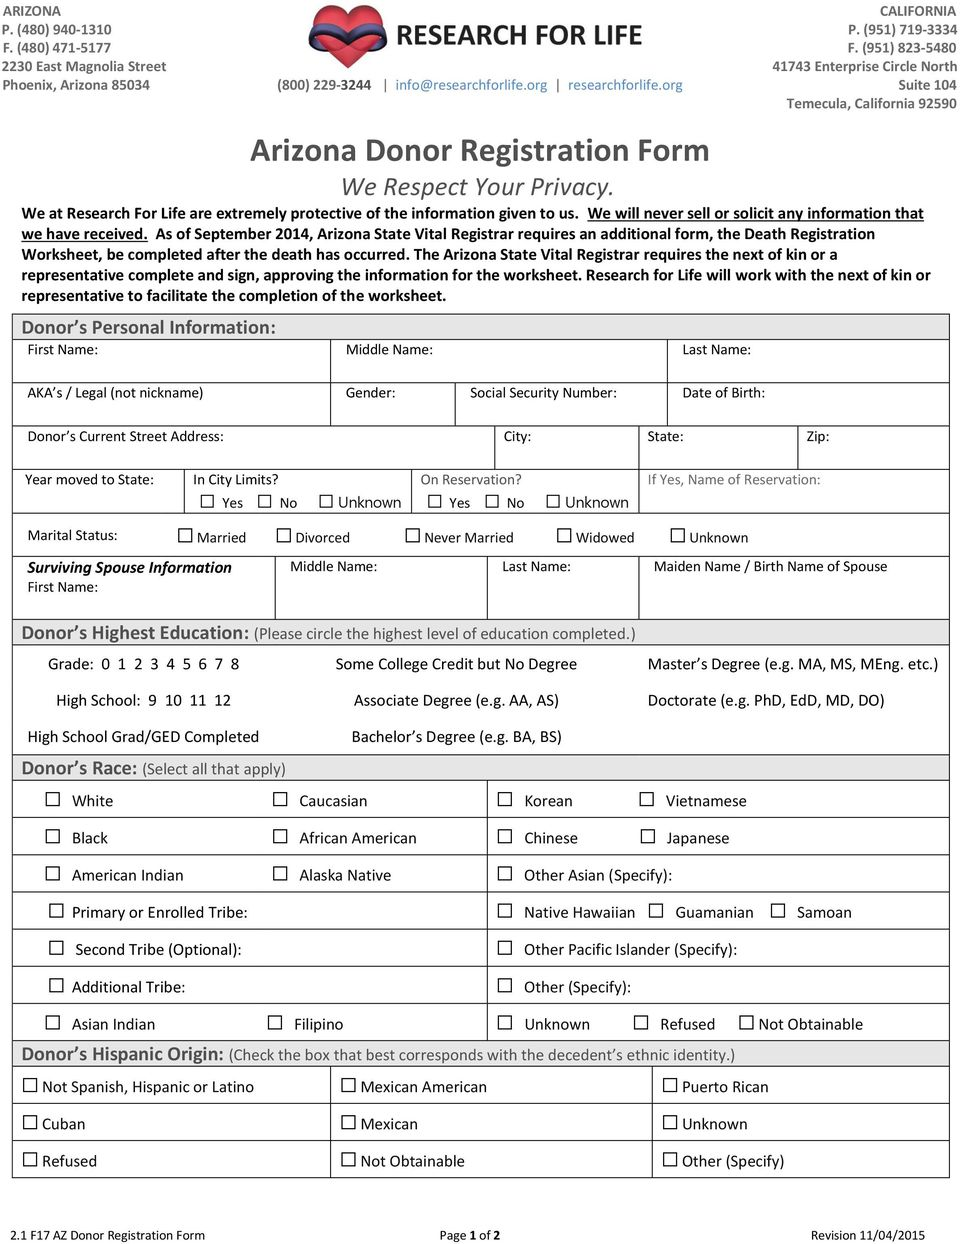 As of September 2014, Arizona State Vital Registrar requires an additional form, the Death Registration Worksheet, be completed after the death has occurred.